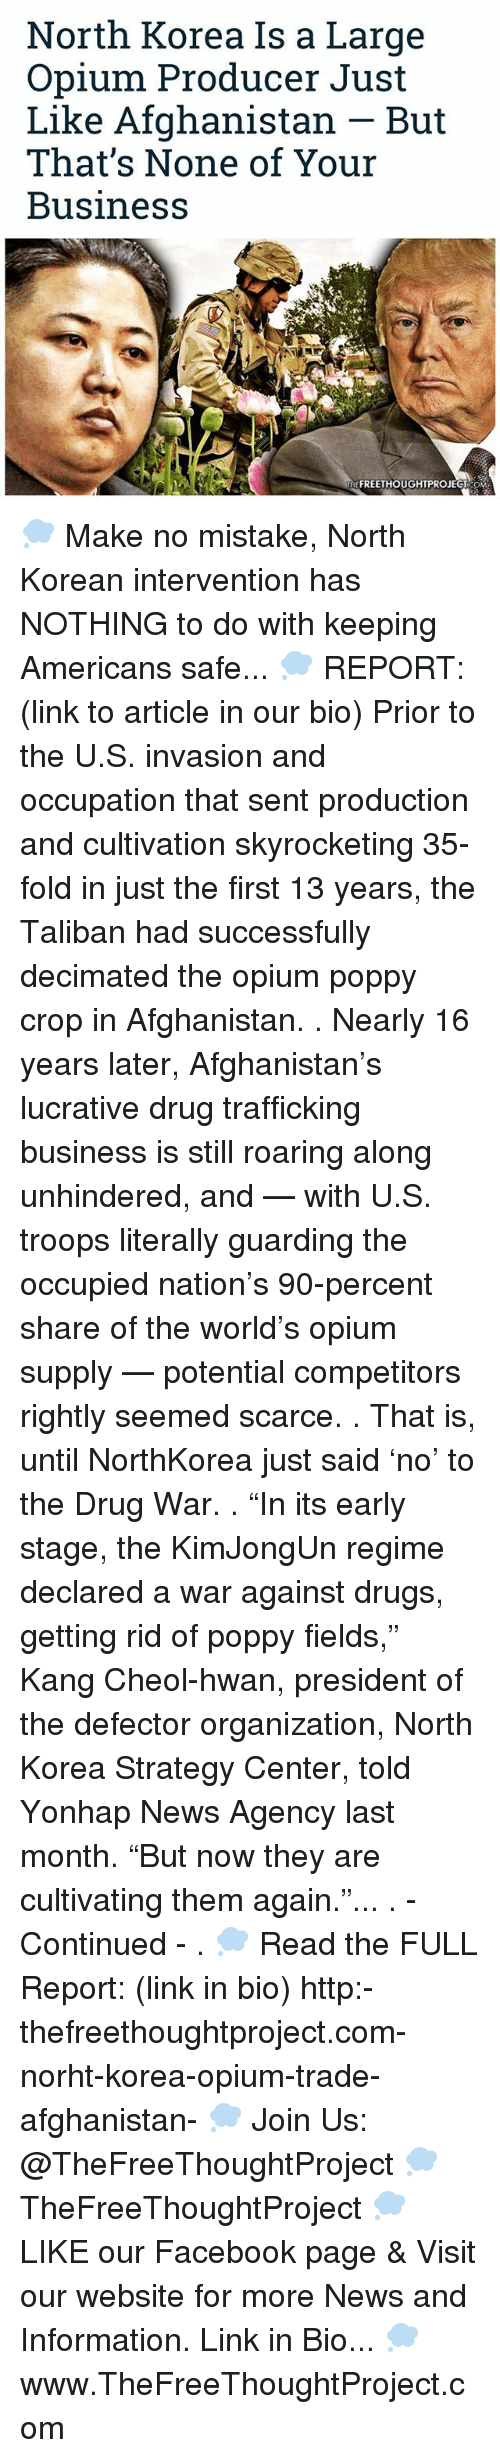 """taliban: North Korea Is a Large  Opium Producer Just  Like Afghanistan But  That's None of Your  Business  TNEFREETHOUGHTPROJECT COM 💭 Make no mistake, North Korean intervention has NOTHING to do with keeping Americans safe... 💭 REPORT: (link to article in our bio) Prior to the U.S. invasion and occupation that sent production and cultivation skyrocketing 35-fold in just the first 13 years, the Taliban had successfully decimated the opium poppy crop in Afghanistan. . Nearly 16 years later, Afghanistan's lucrative drug trafficking business is still roaring along unhindered, and — with U.S. troops literally guarding the occupied nation's 90-percent share of the world's opium supply — potential competitors rightly seemed scarce. . That is, until NorthKorea just said 'no' to the Drug War. . """"In its early stage, the KimJongUn regime declared a war against drugs, getting rid of poppy fields,"""" Kang Cheol-hwan, president of the defector organization, North Korea Strategy Center, told Yonhap News Agency last month. """"But now they are cultivating them again.""""... . - Continued - . 💭 Read the FULL Report: (link in bio) http:-thefreethoughtproject.com-norht-korea-opium-trade-afghanistan- 💭 Join Us: @TheFreeThoughtProject 💭 TheFreeThoughtProject 💭 LIKE our Facebook page & Visit our website for more News and Information. Link in Bio... 💭 www.TheFreeThoughtProject.com"""